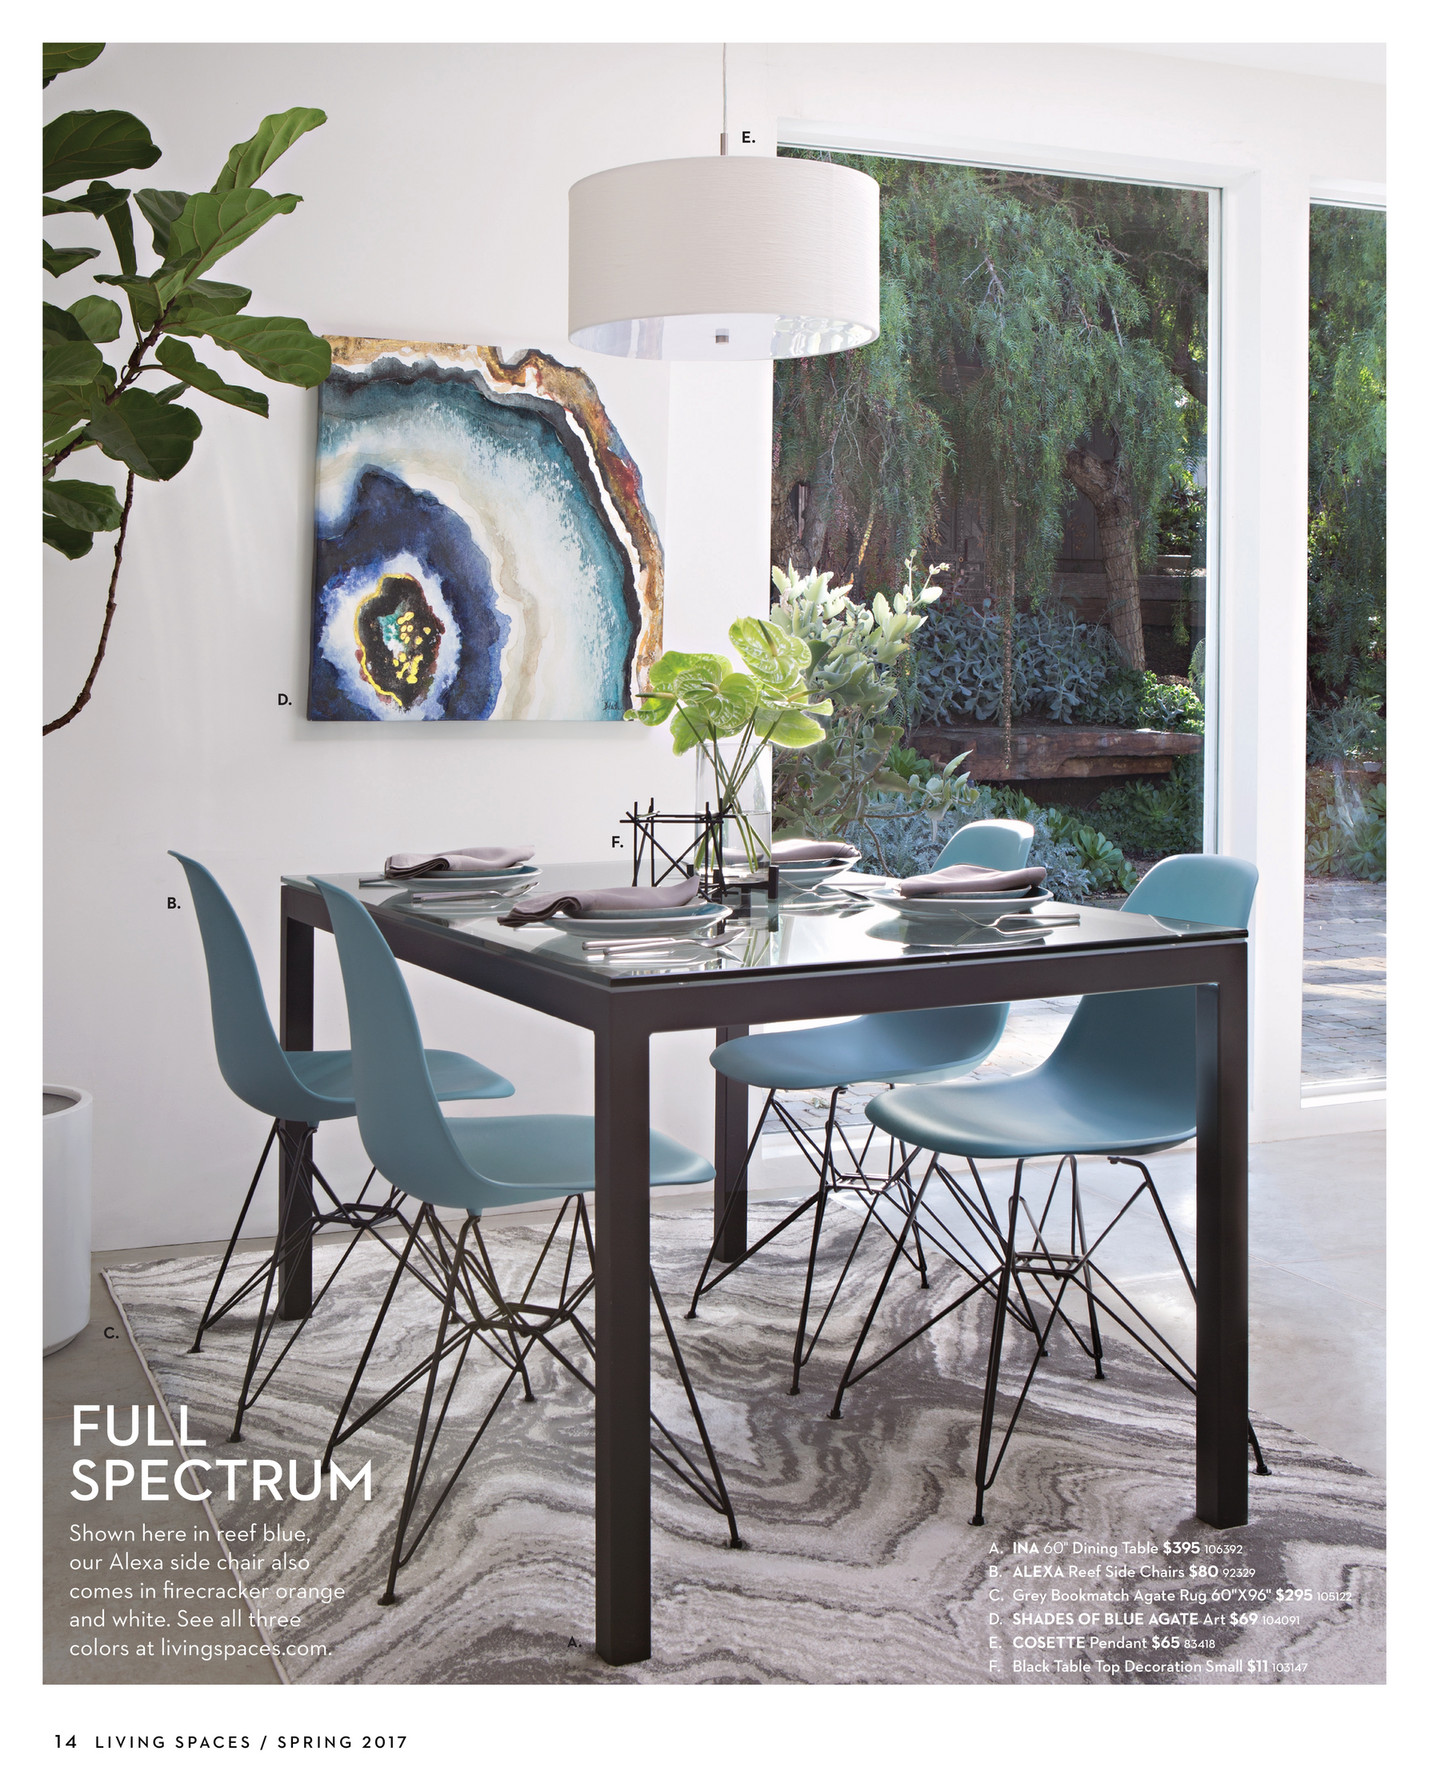 Living Spaces - Product Catalog - Spring 2017 - Page 14-15